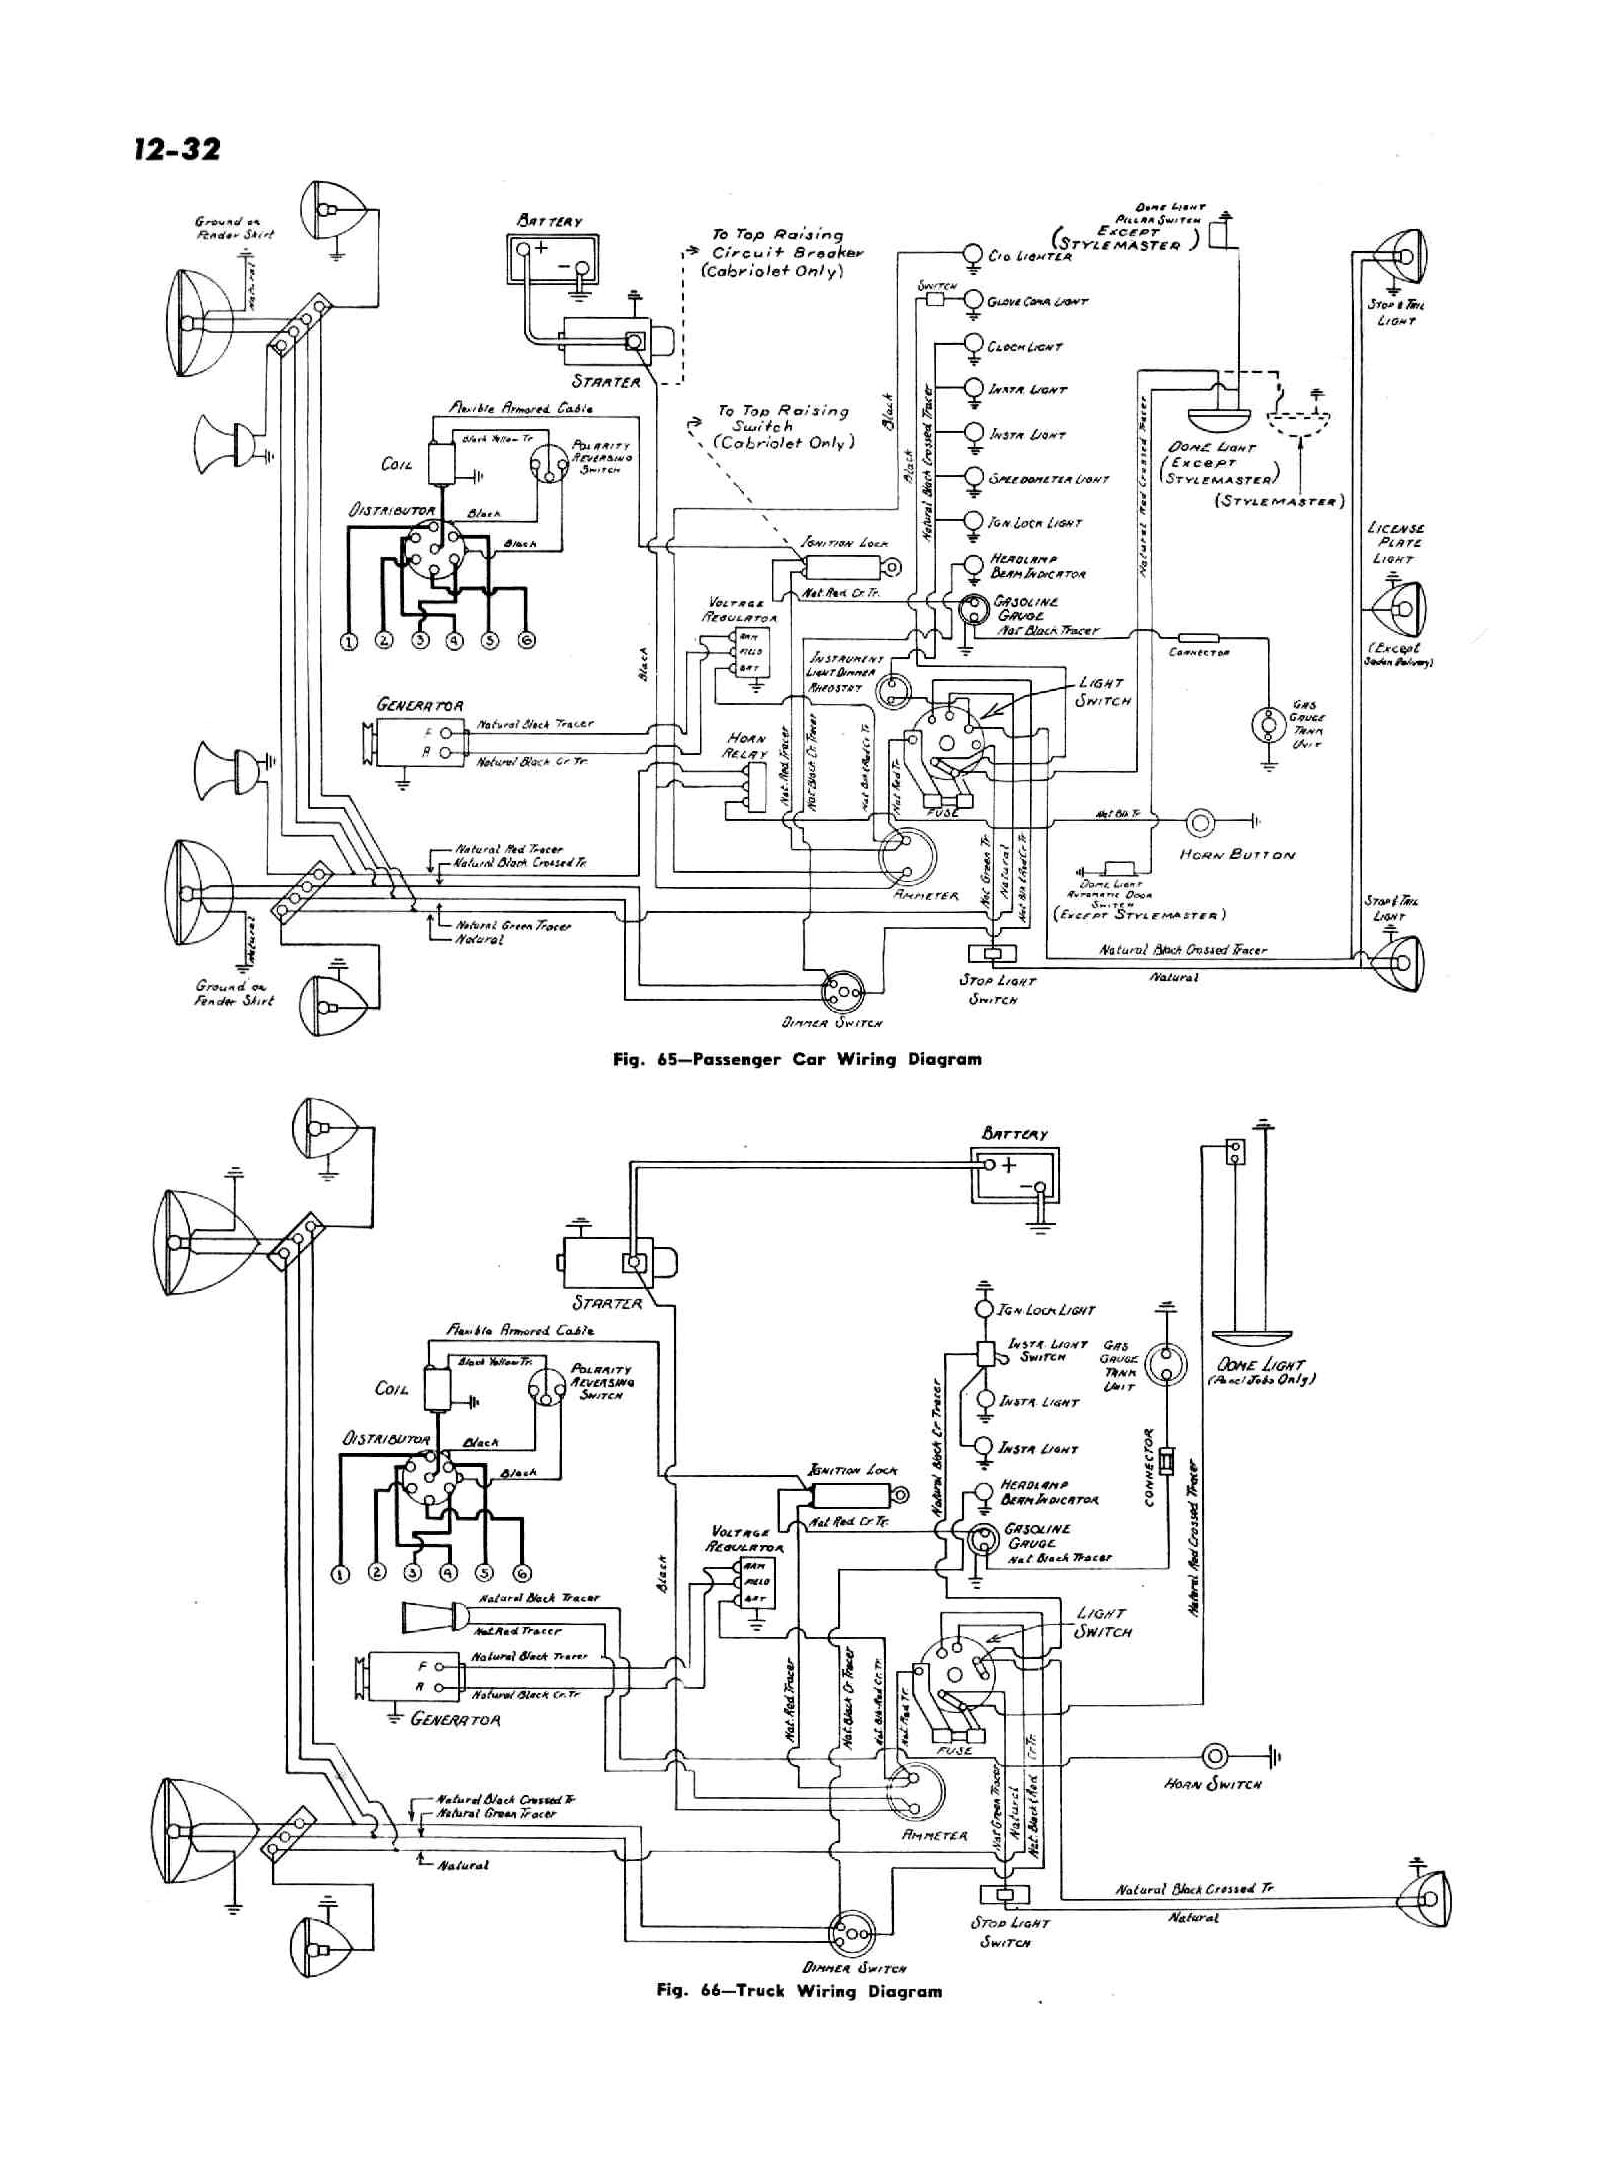 1951 chevy car wiring diagram